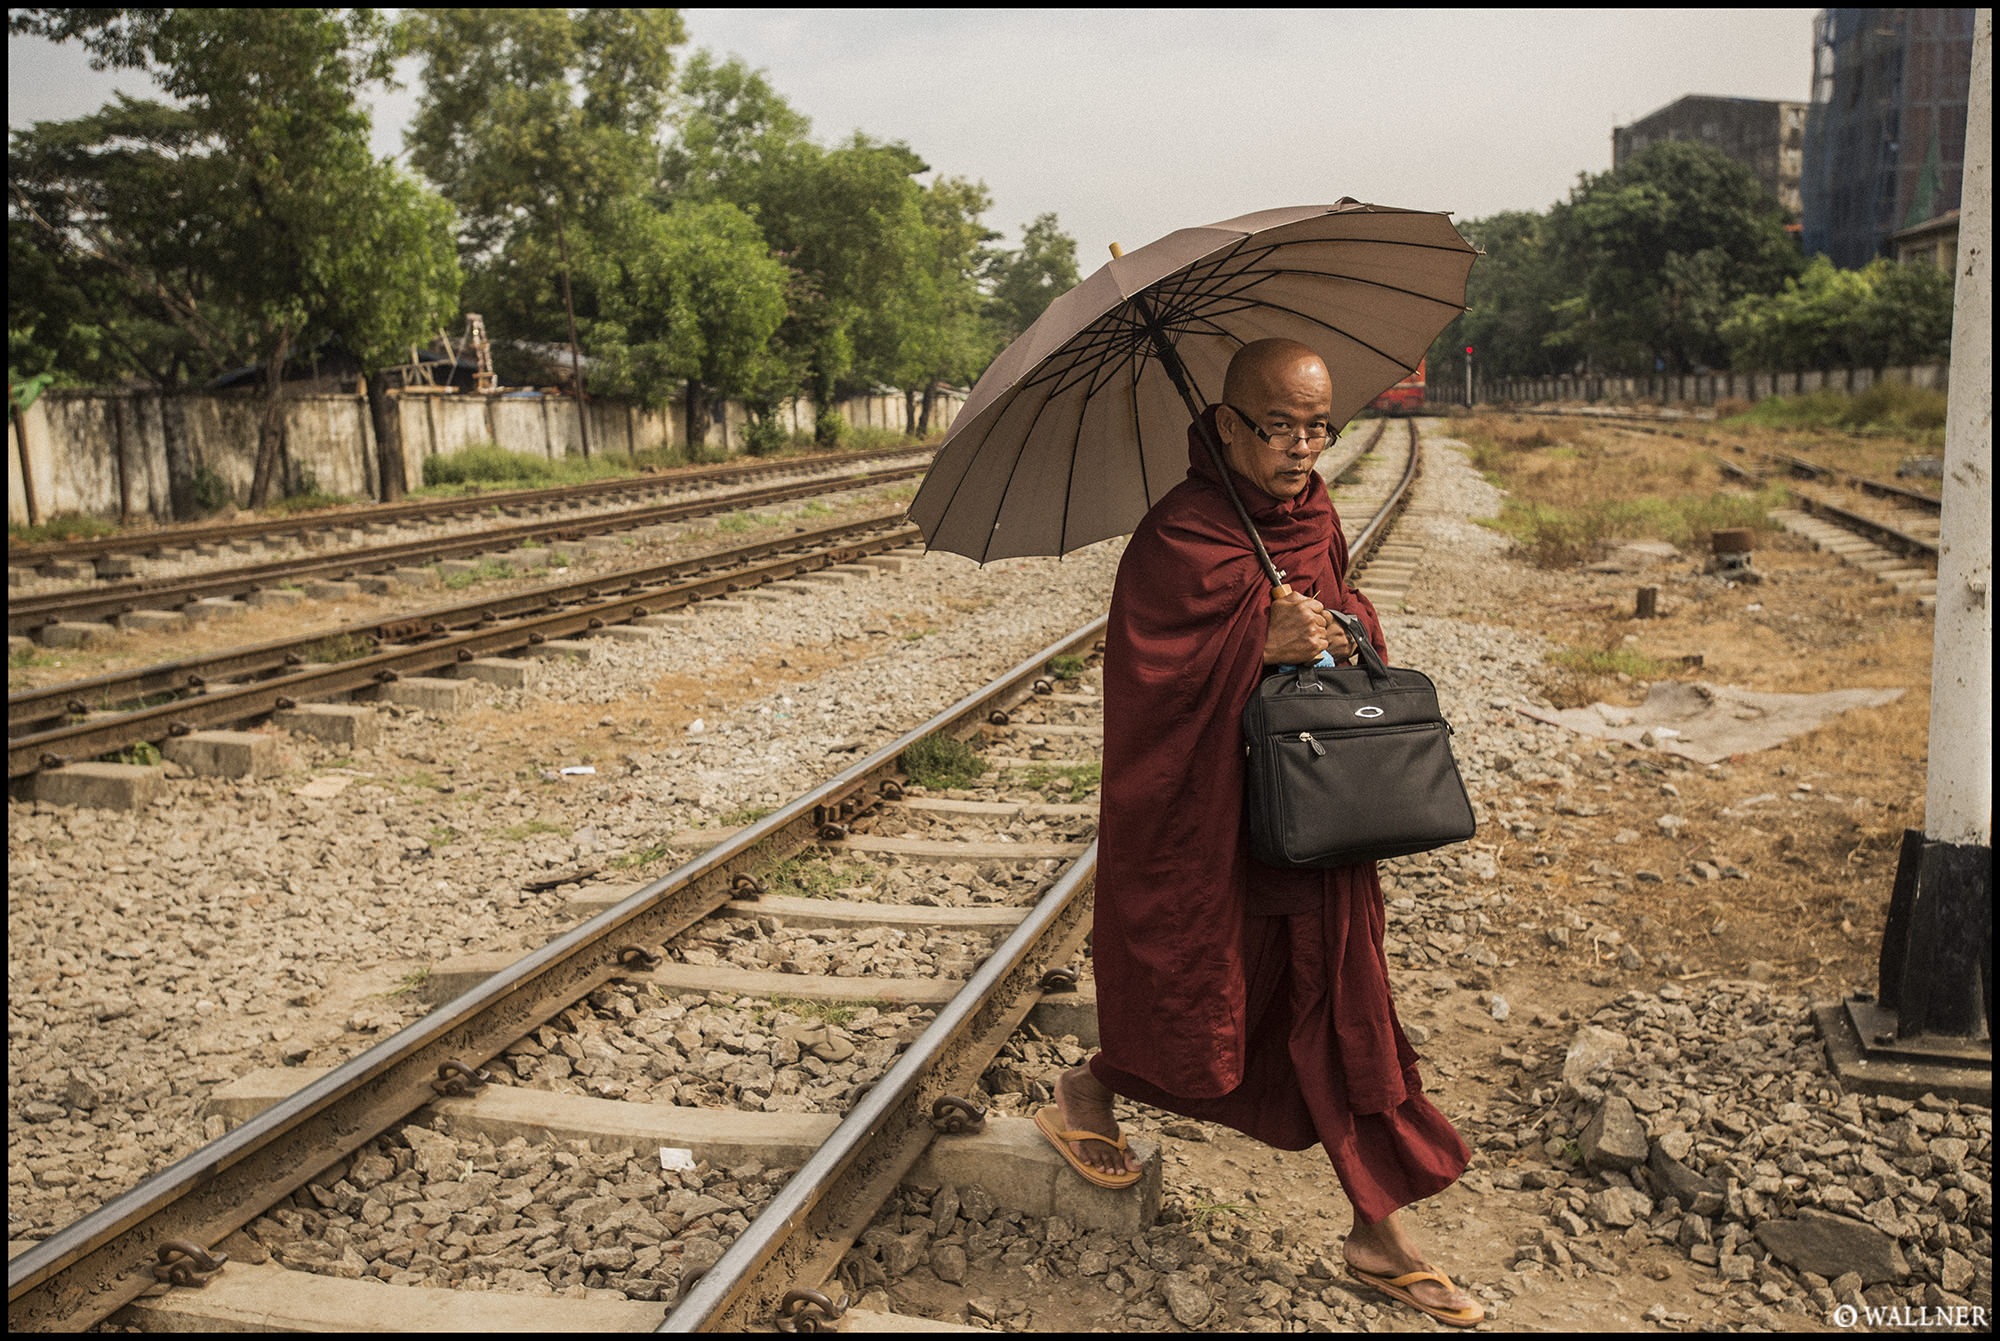 Digital Patrik Wallner Yangon Monk Traintracks Crossing LOWQ 2000P w WM copy